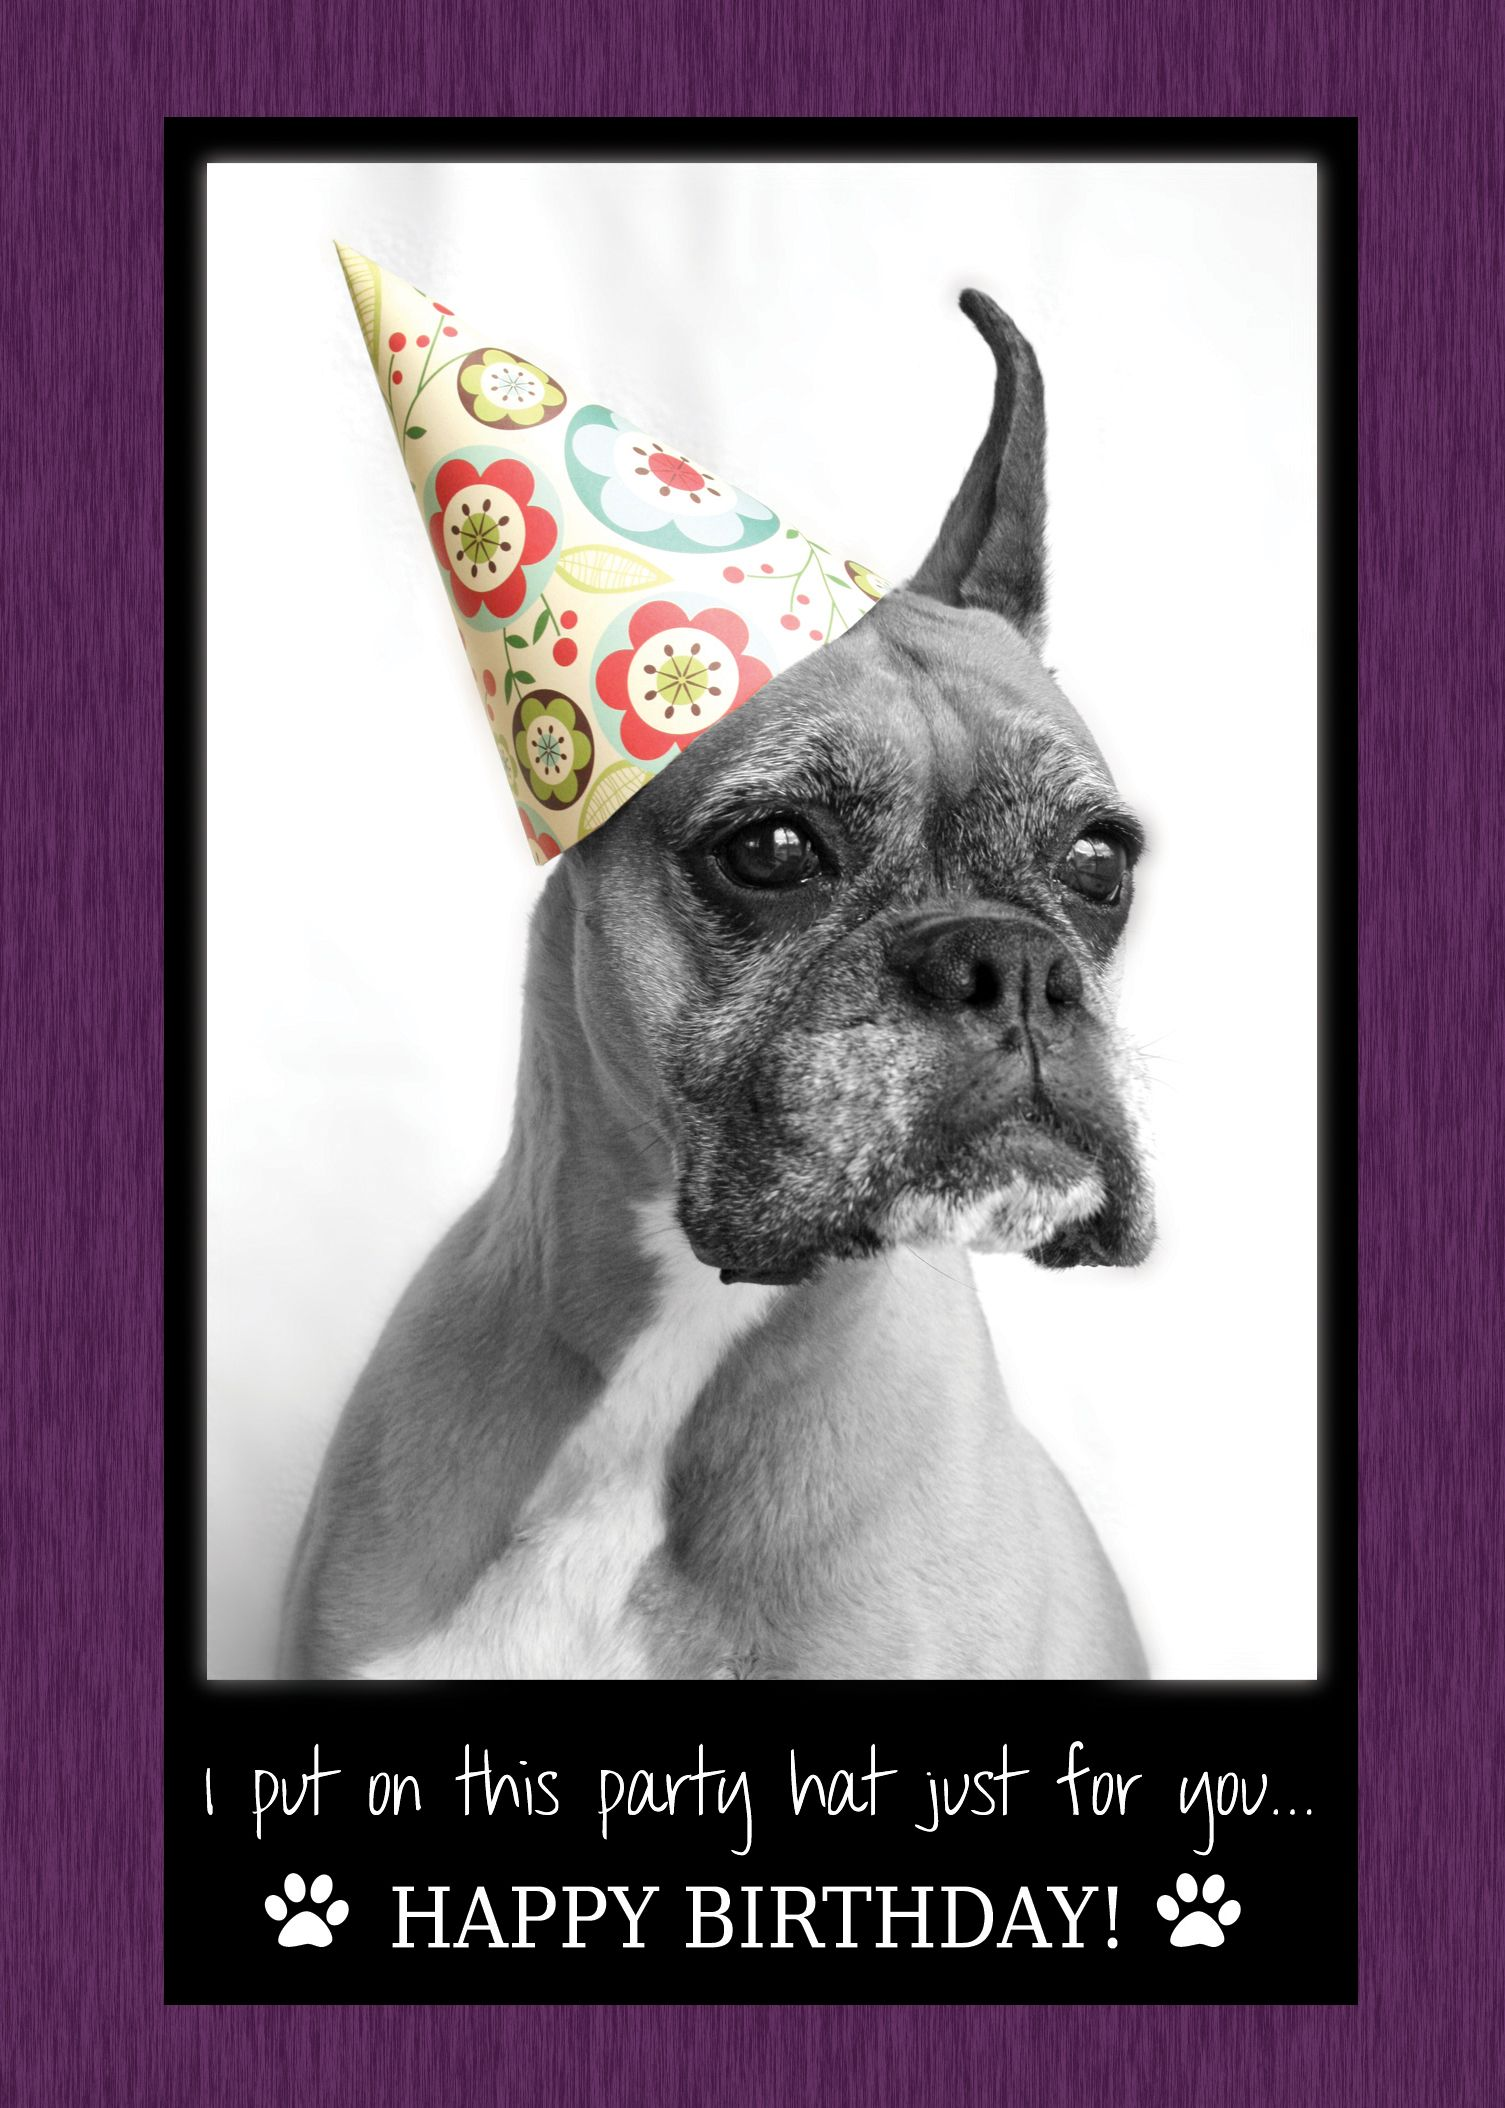 happy birthday funny dog card - photo #14